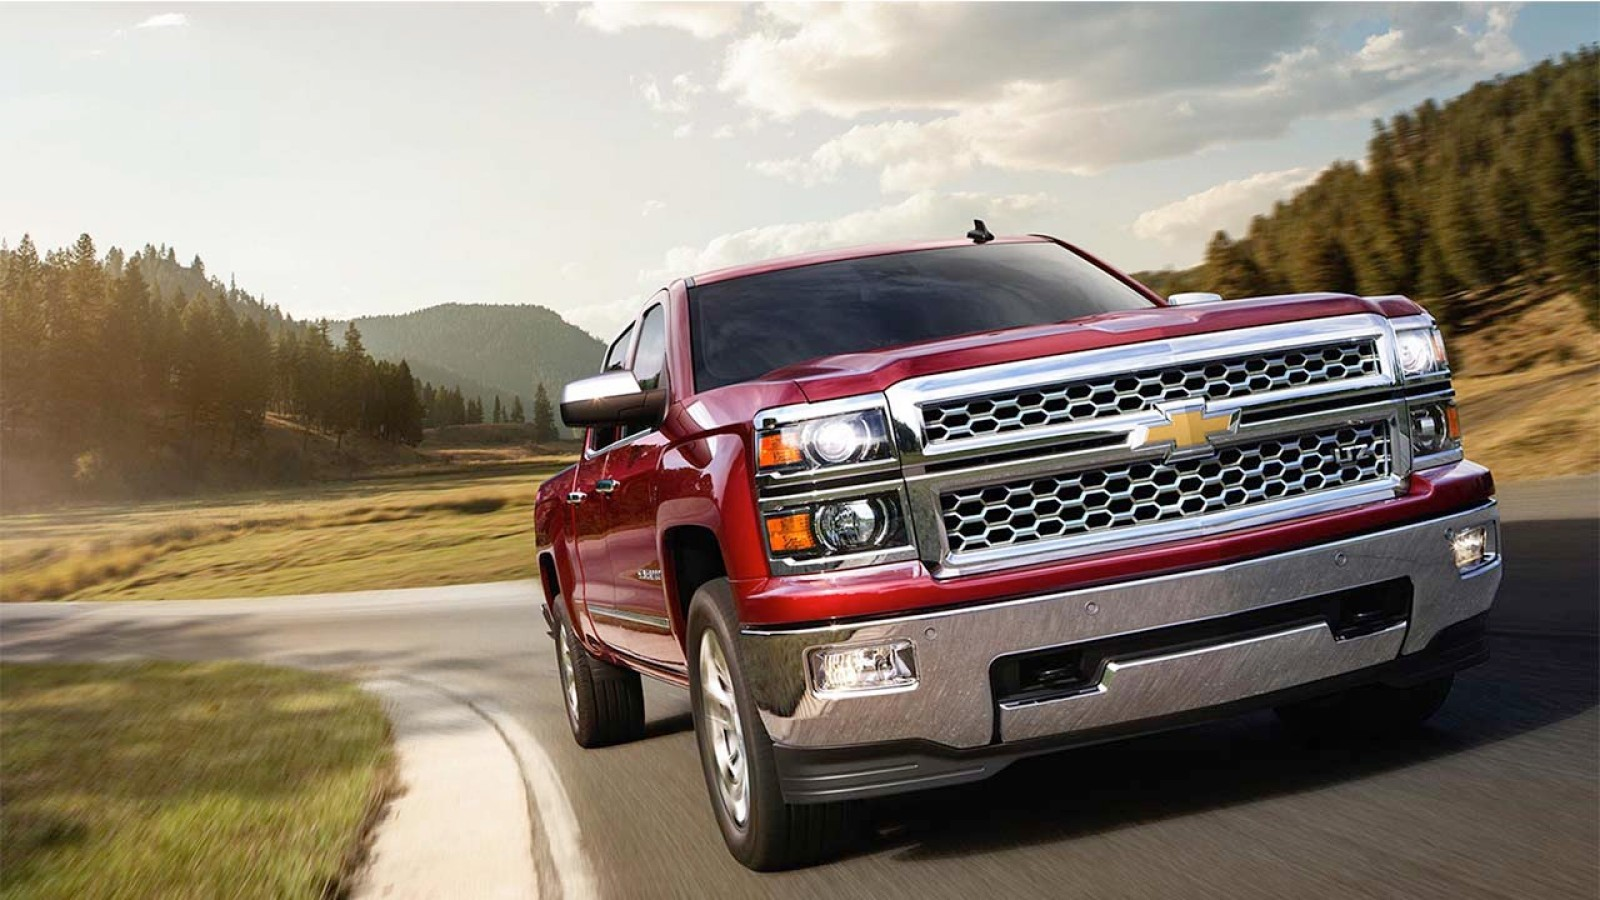 Used Trucks for Sale near Vancouver at Bud Clary Auto Group